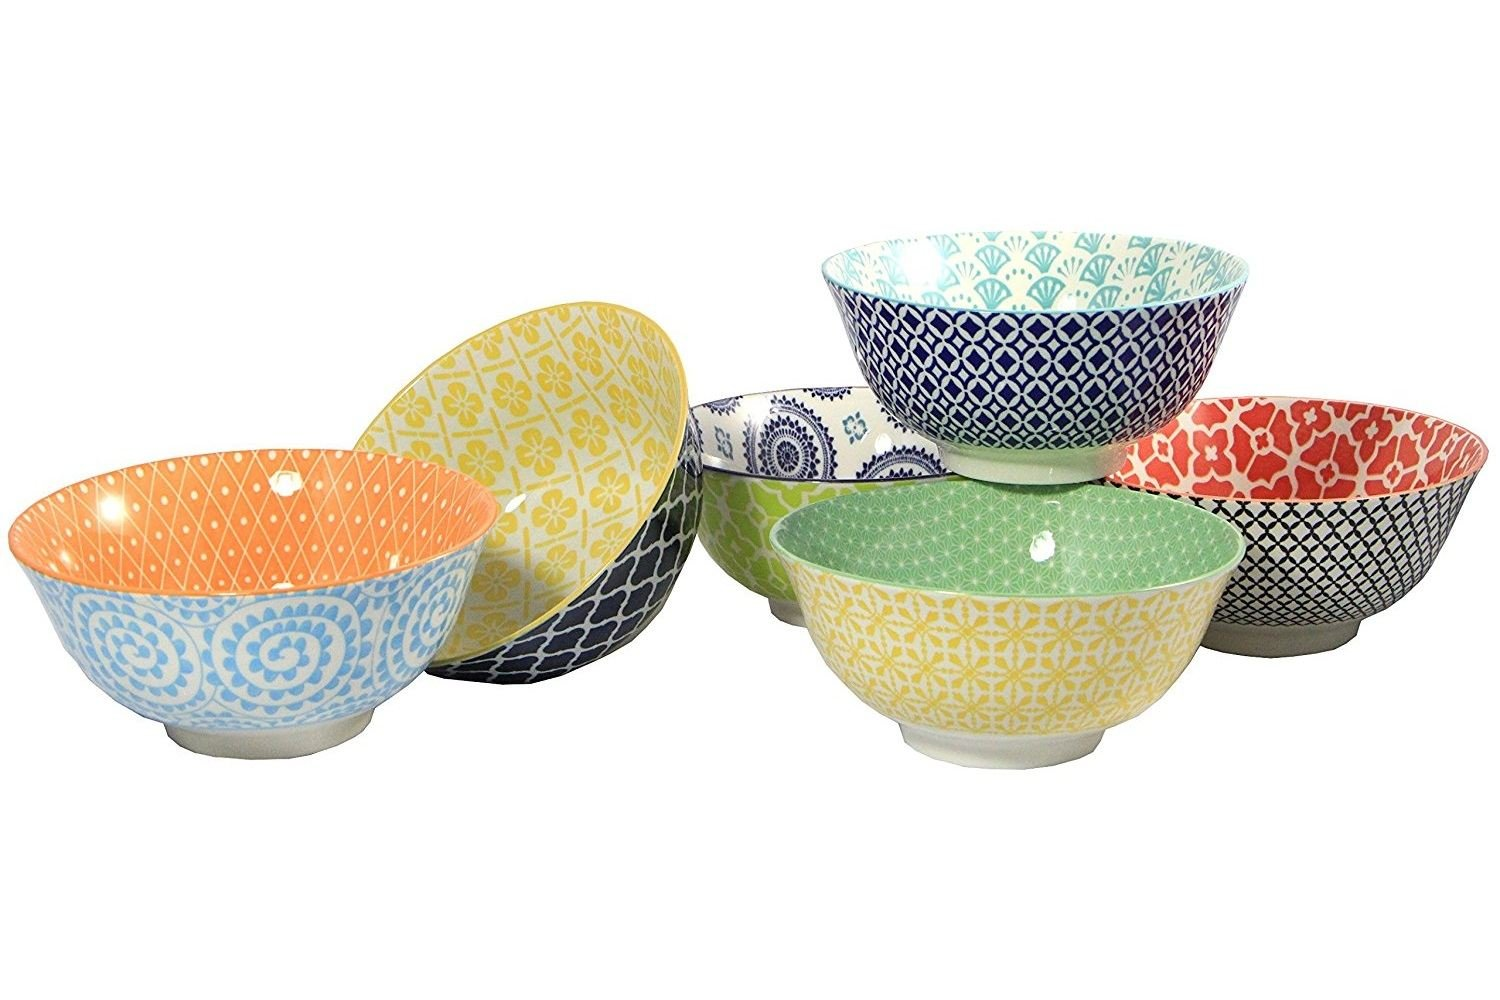 Certified International Large Cereal, Soup, or Pasta Bowls, Chelsea Collection, 6.1 Inch, Set of 6 Assorted Designs by Certified International (Image #1)